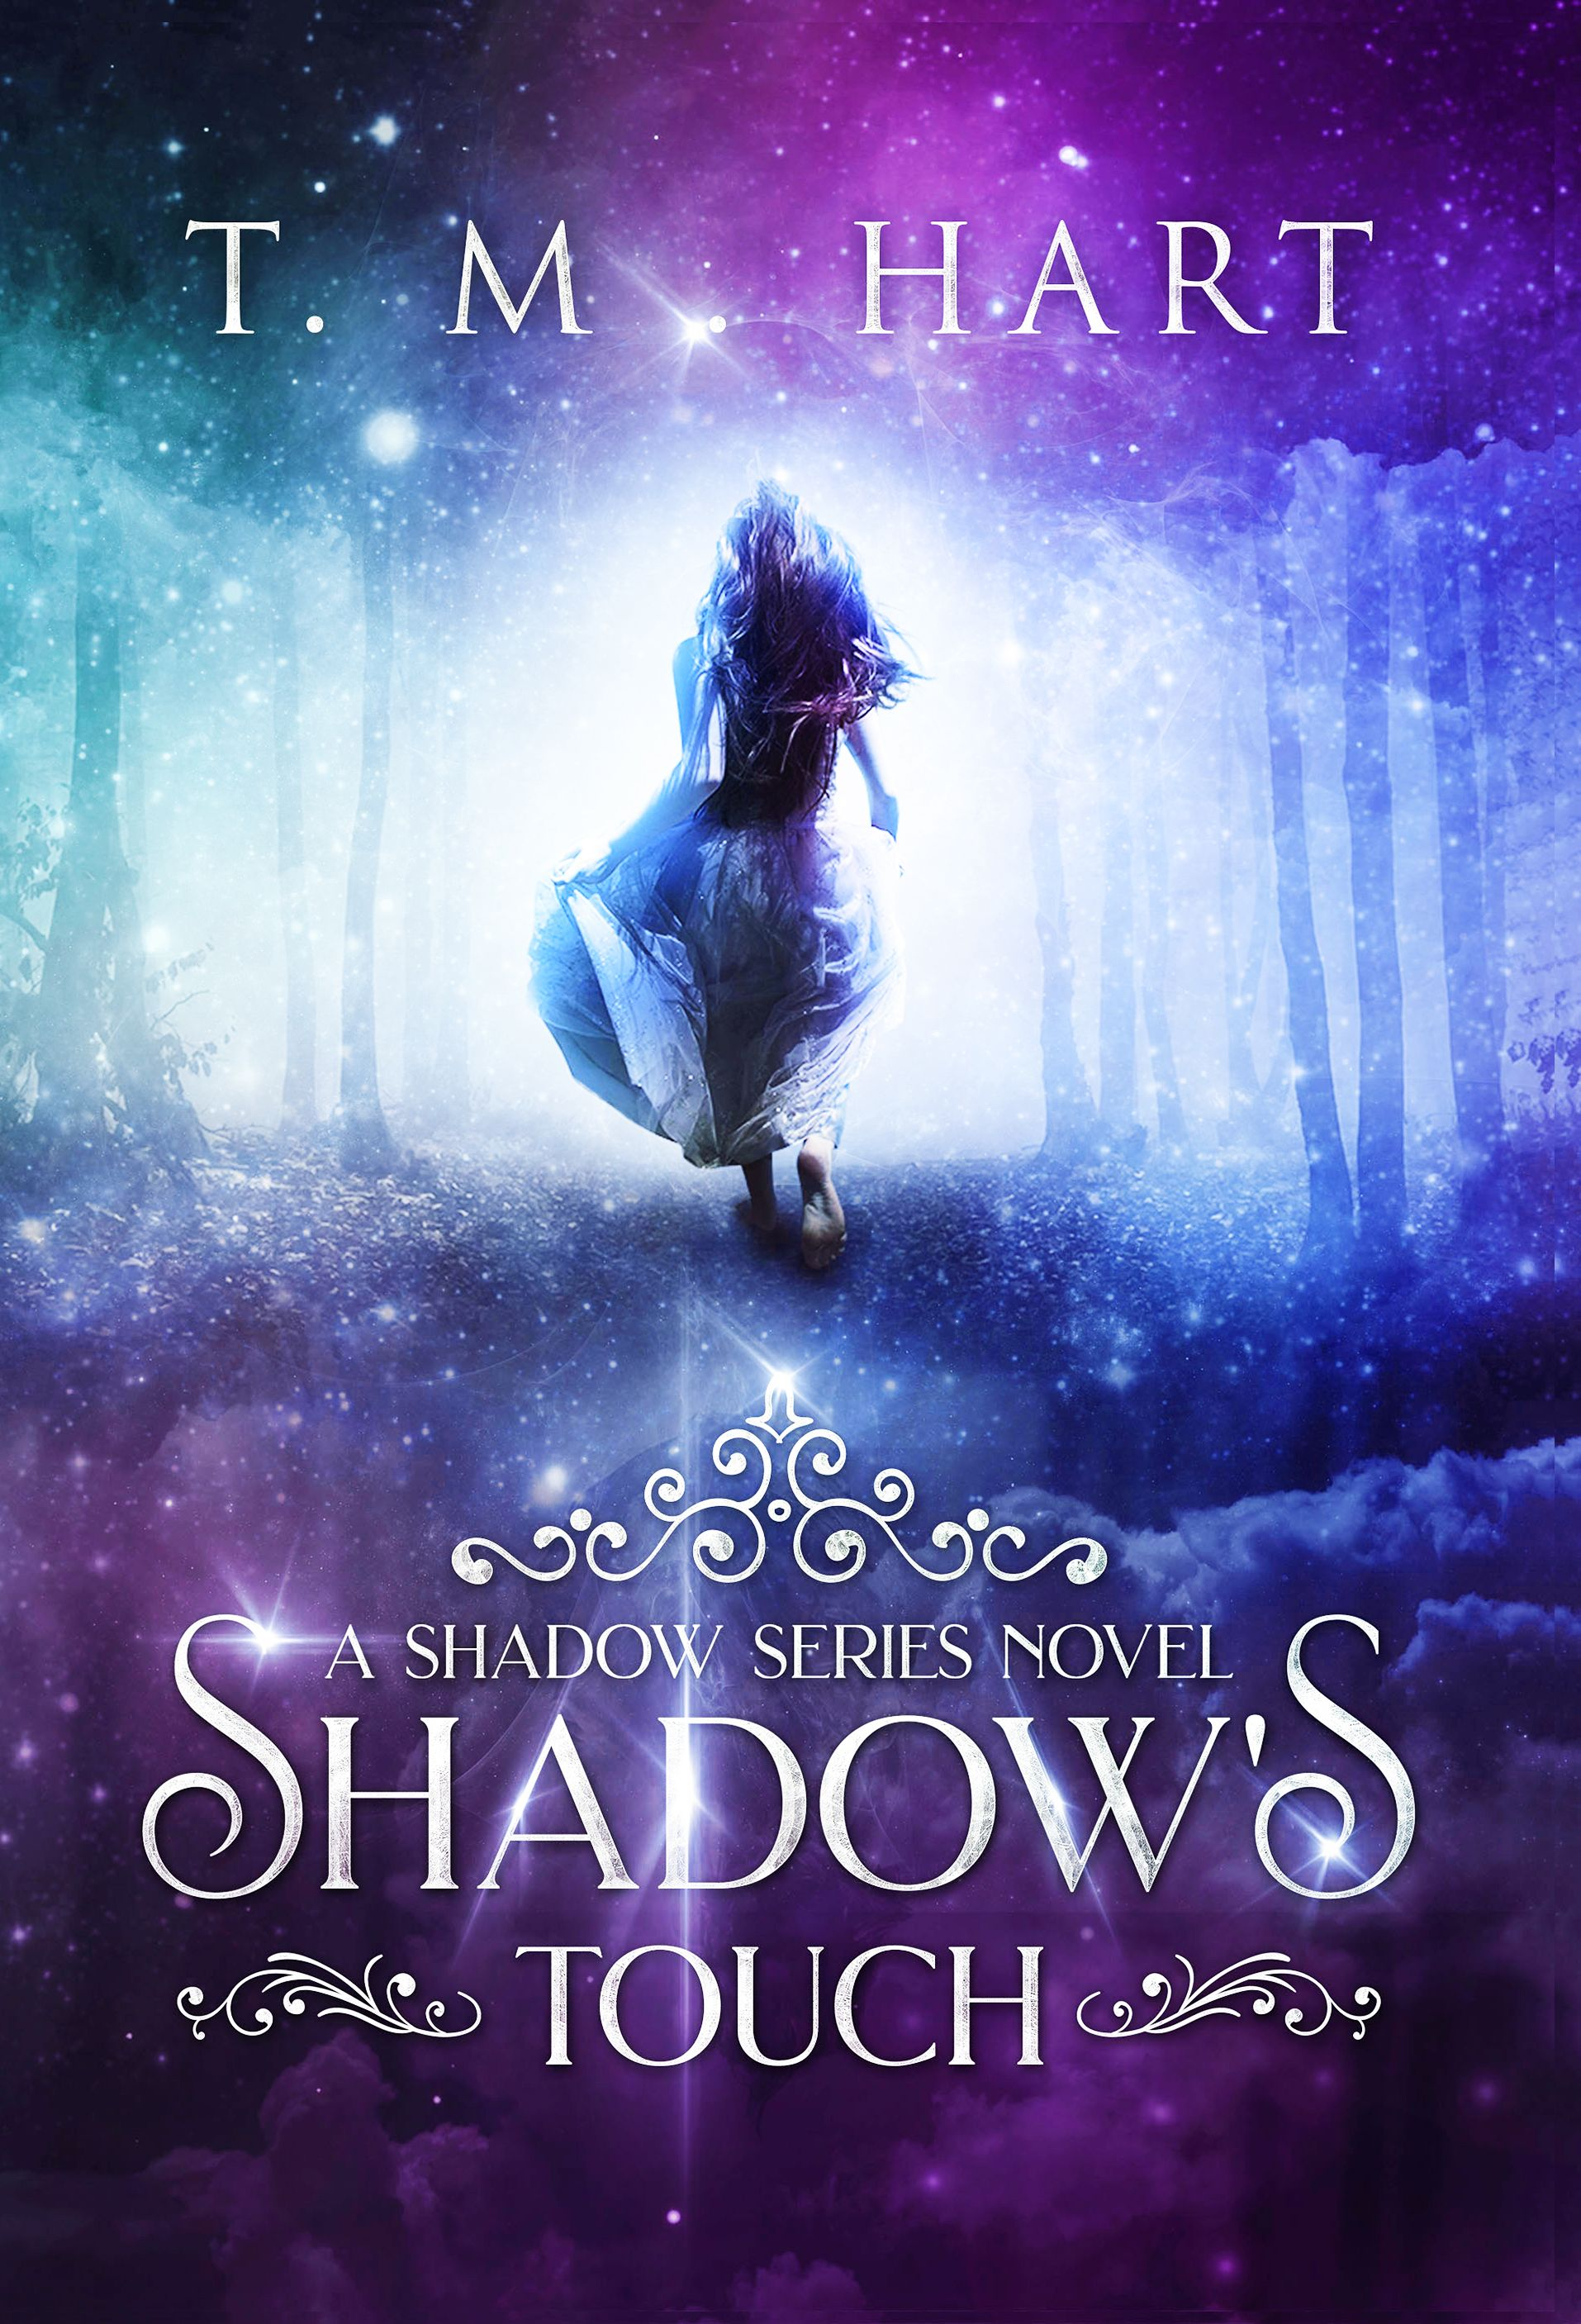 Book 2 in the shadow series adult paranormal romance